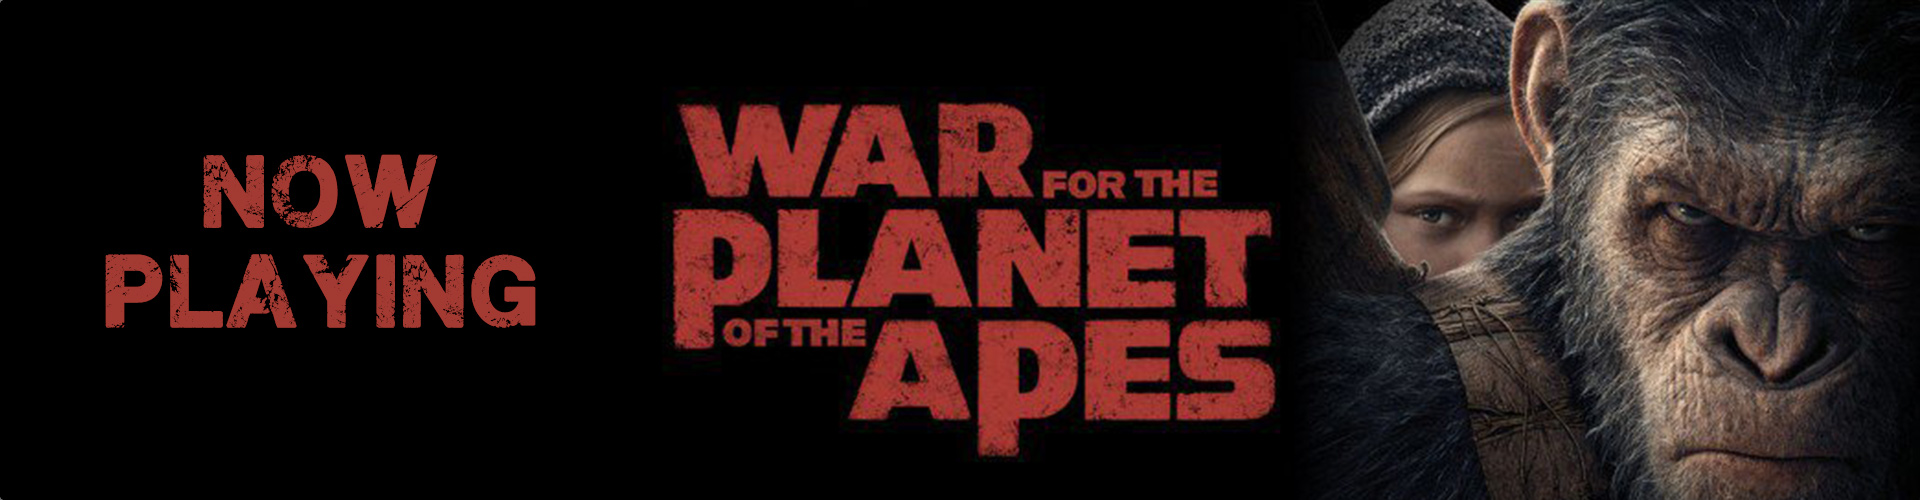 apes-now-playing